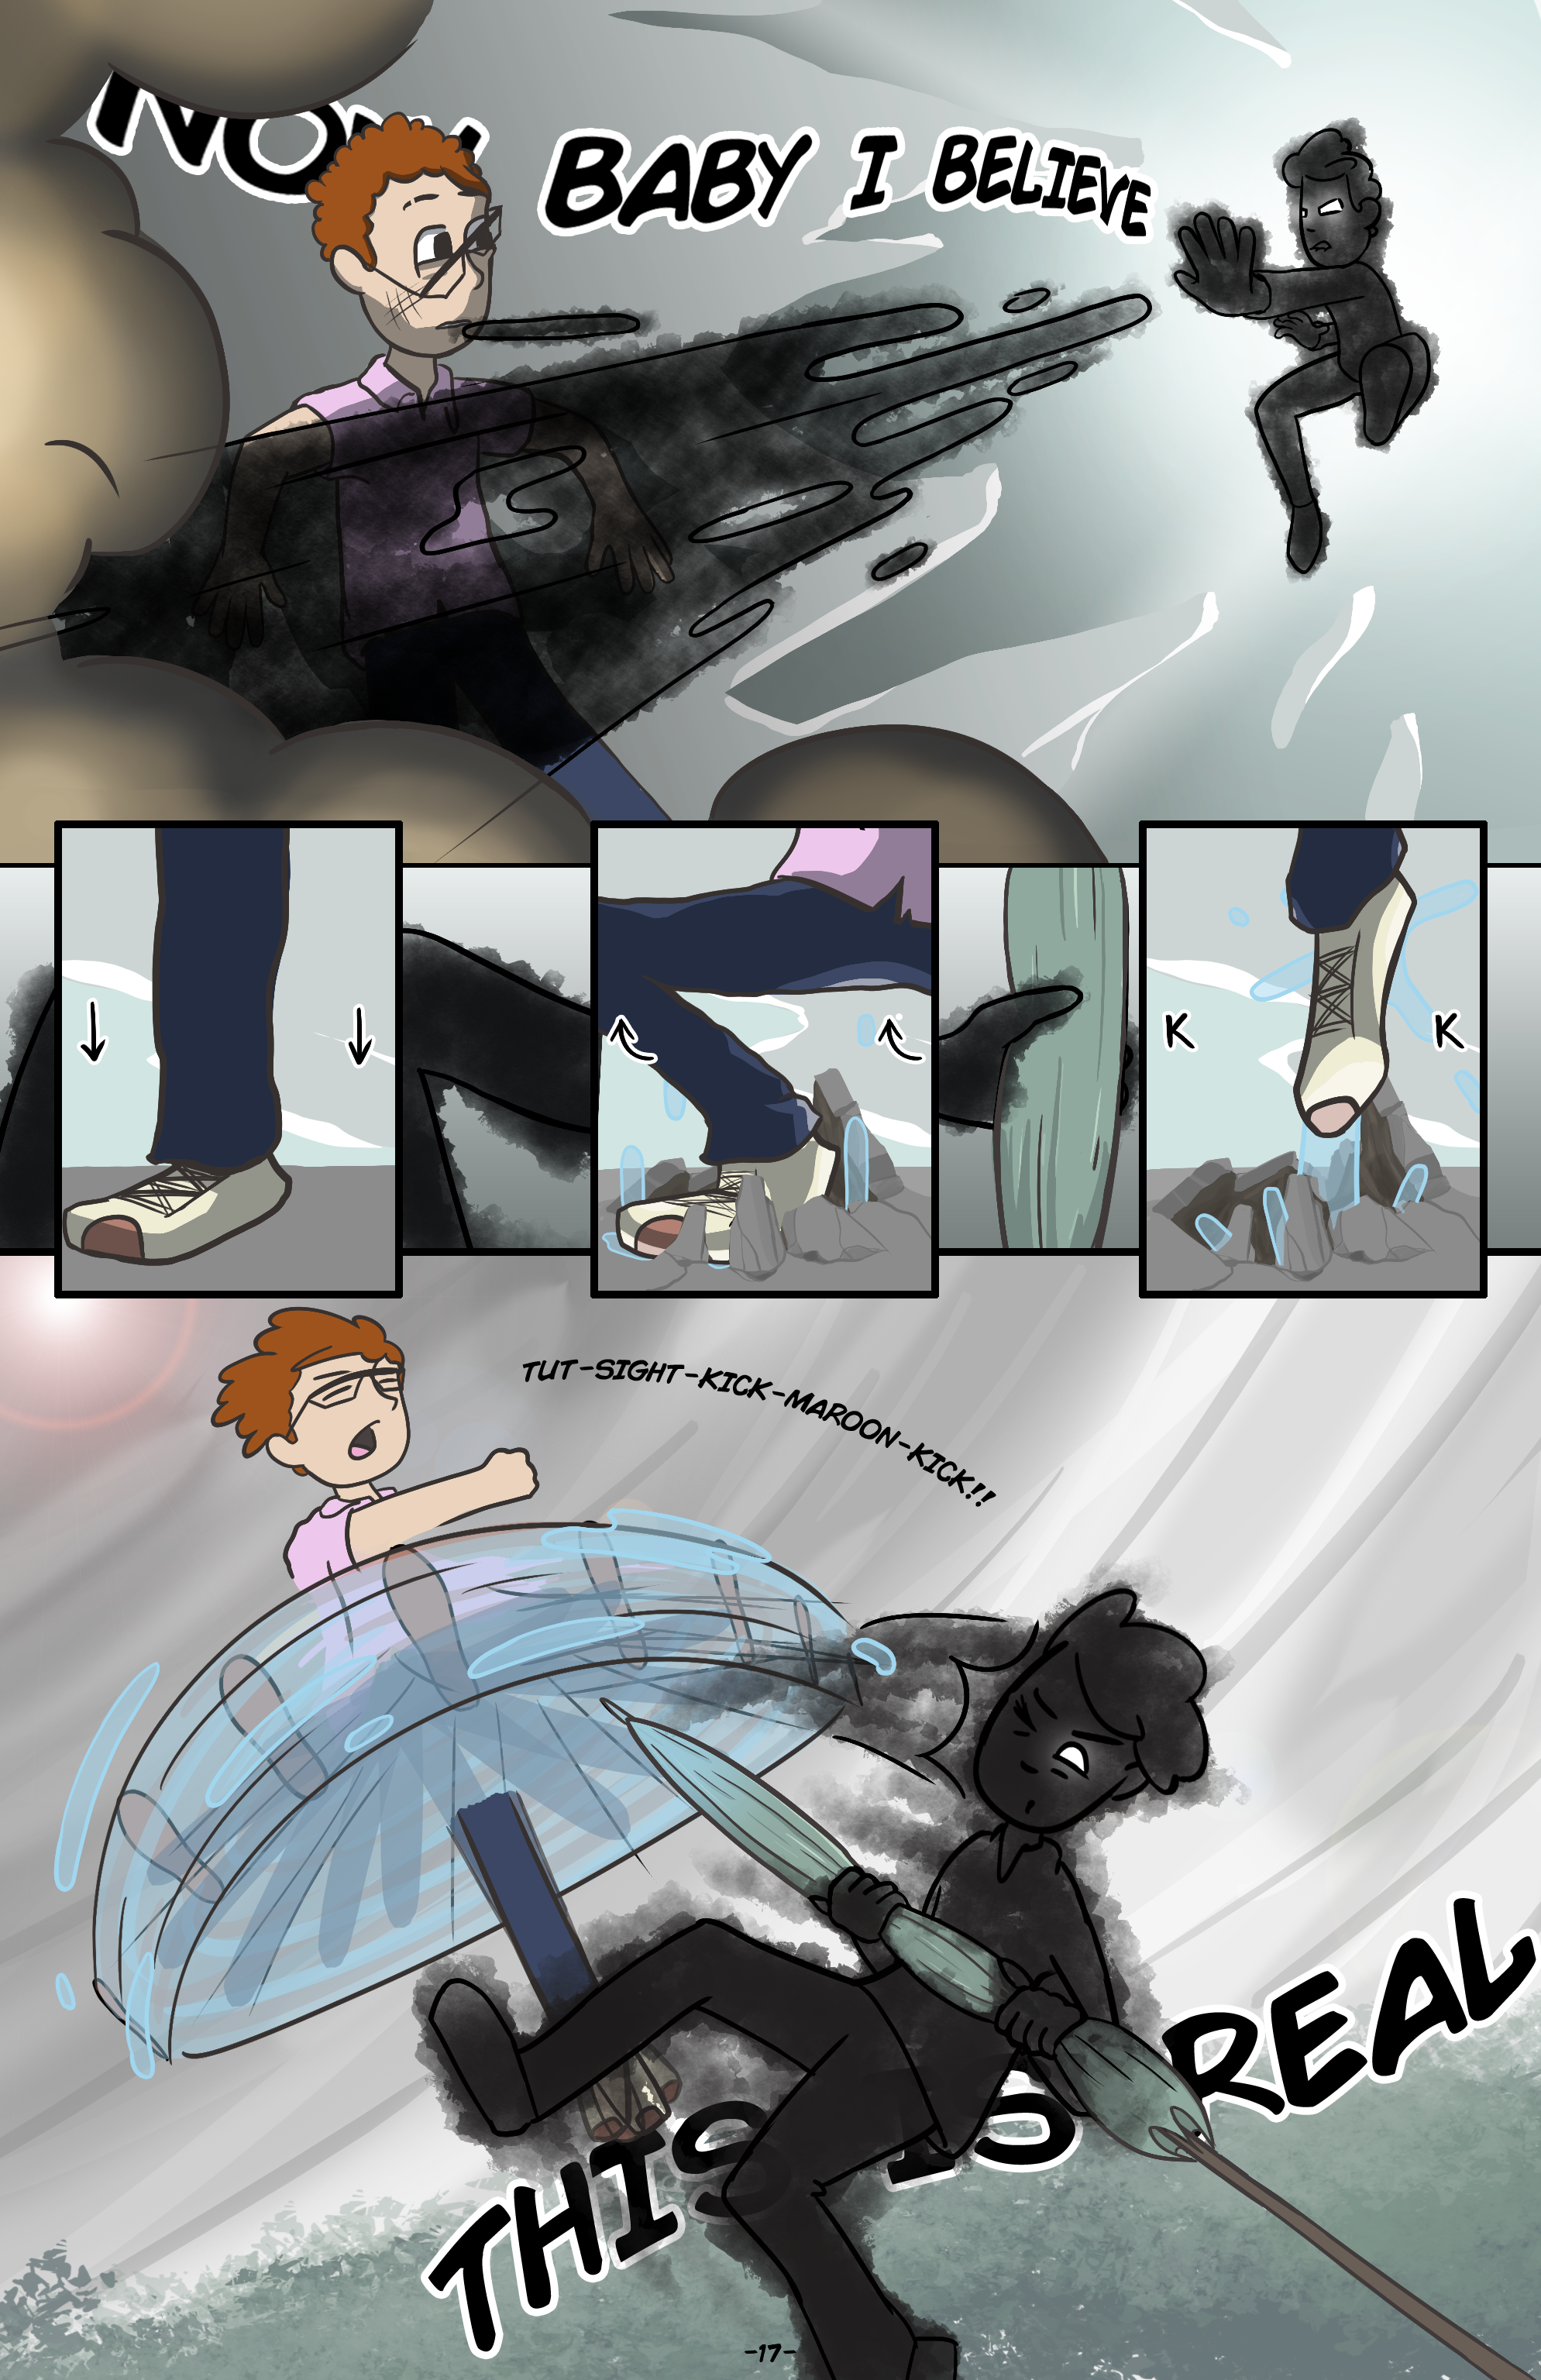 Page 17 Layout_Full-Size.png